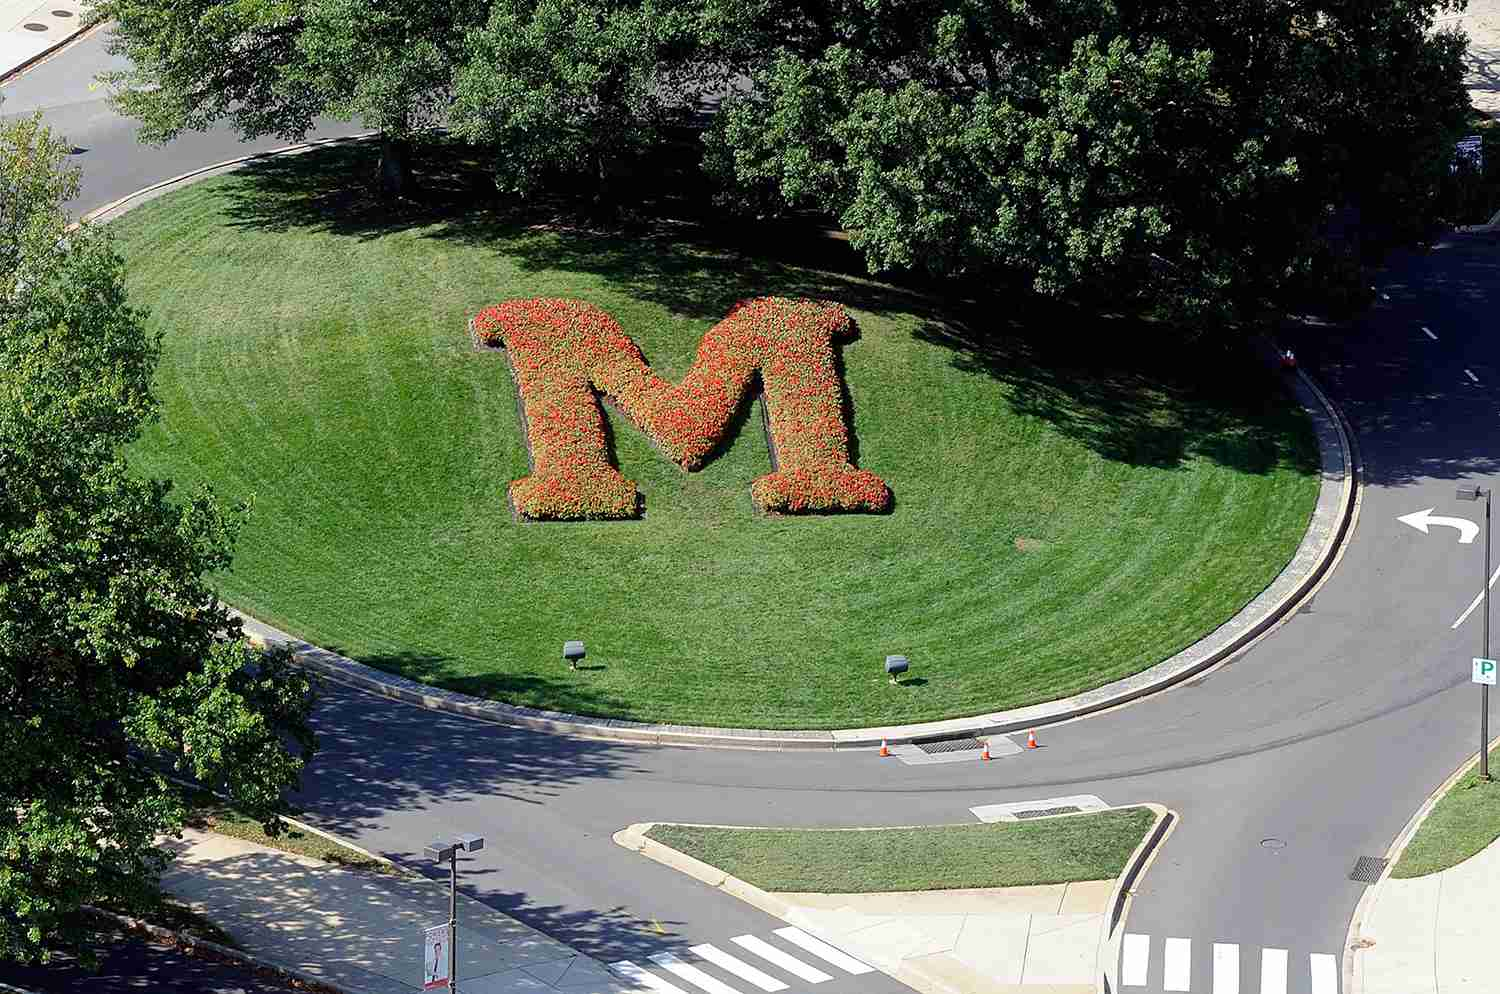 An aerial view of the University of Maryland campus on October 4, 2014 in College Park, Maryland.